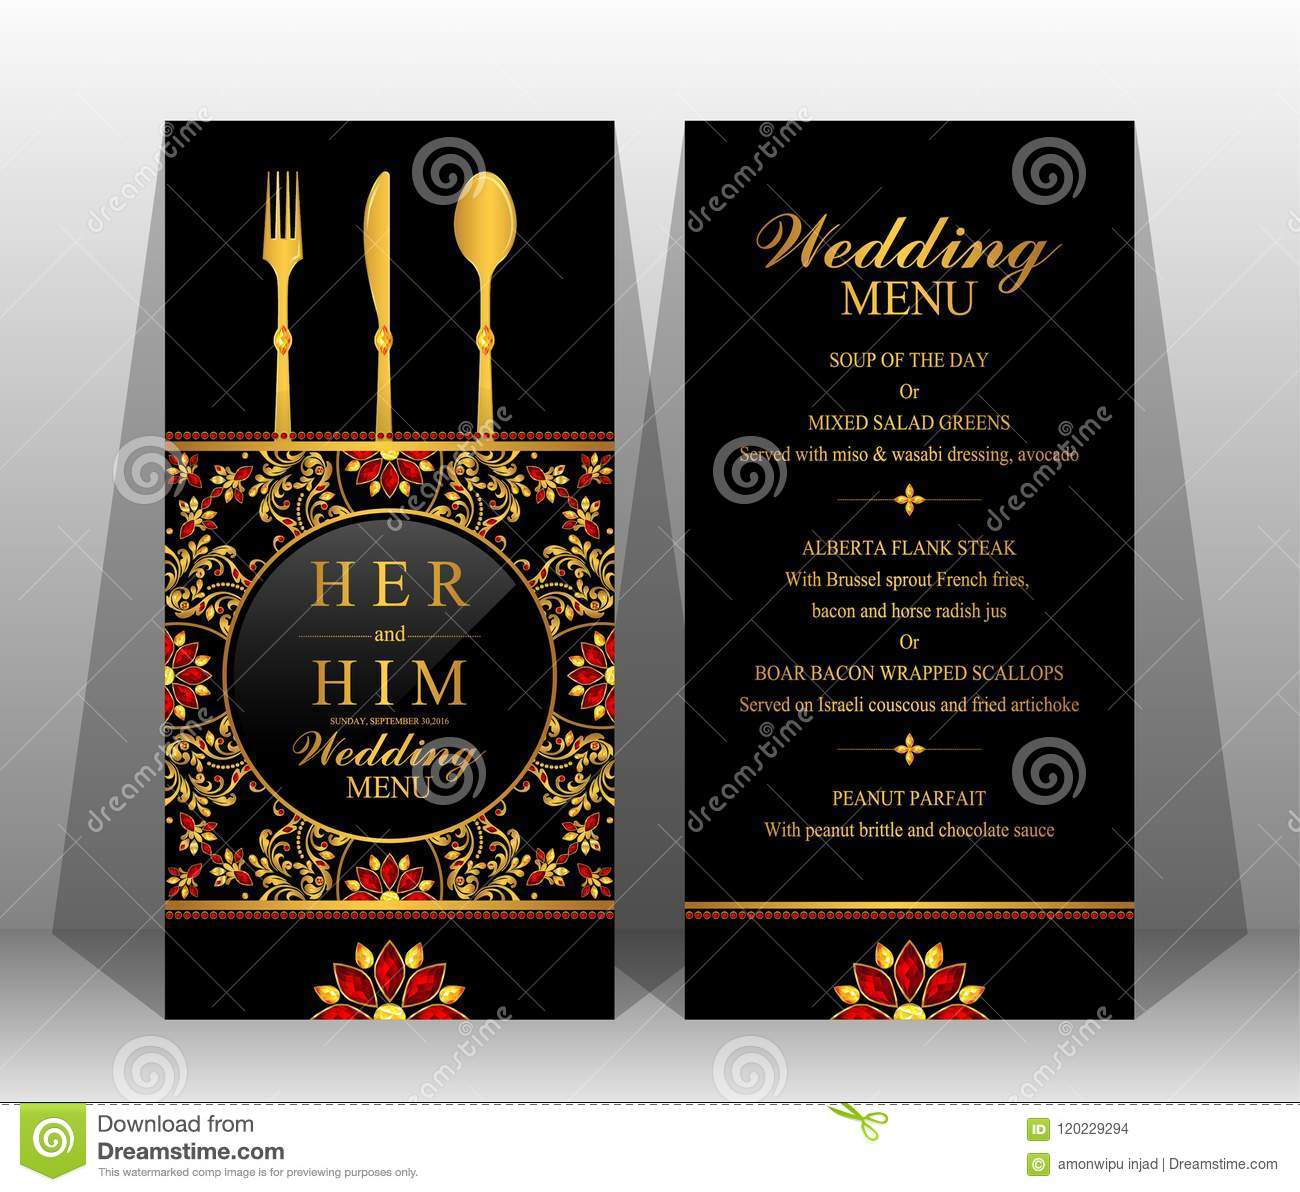 Indian Wedding Reception Food Menu: Wedding Menu Card Templates . Stock Vector